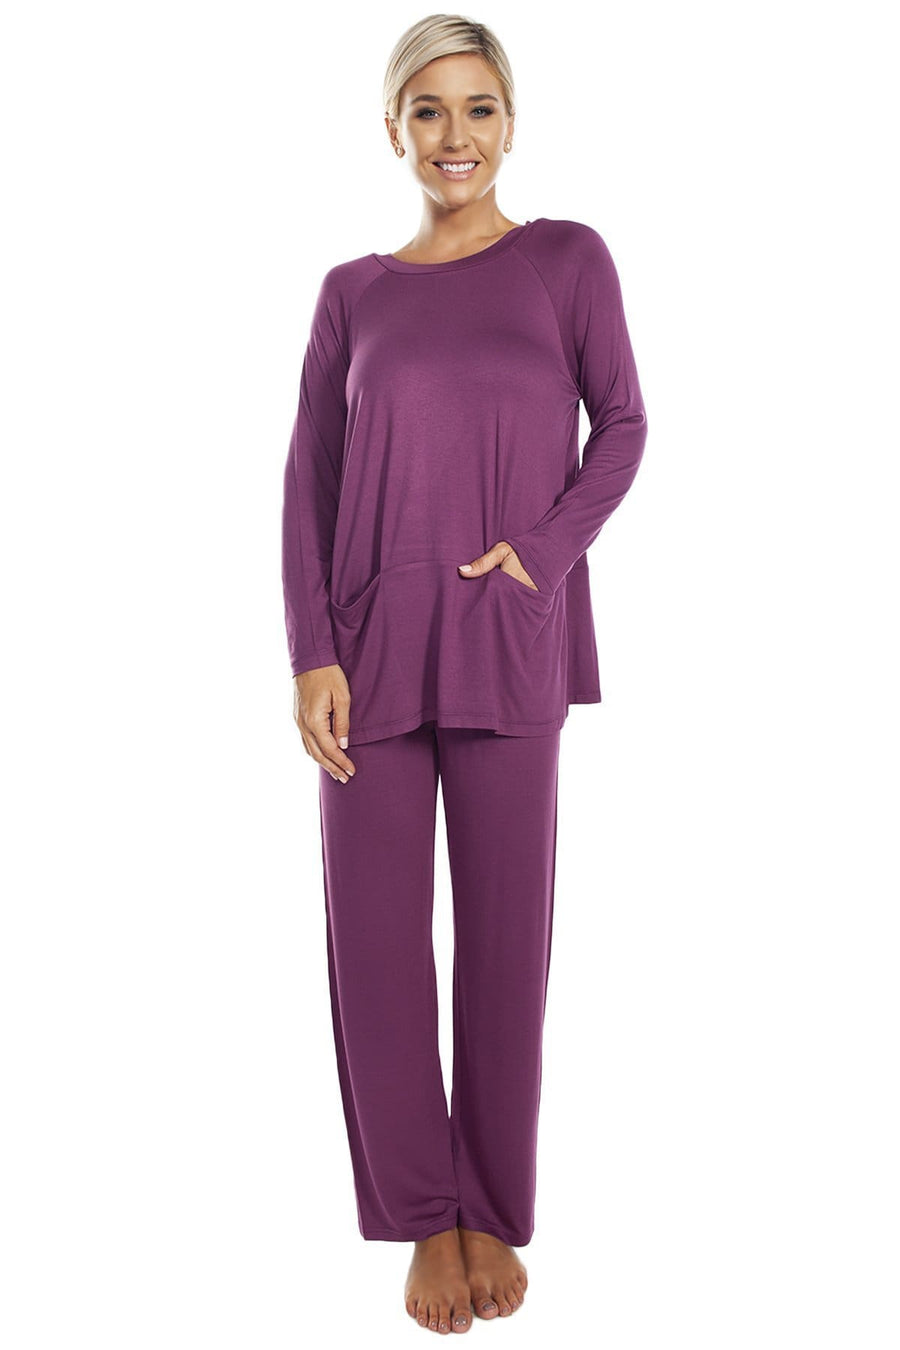 Boat Neck Pocket Tunic - Rhonda Shear